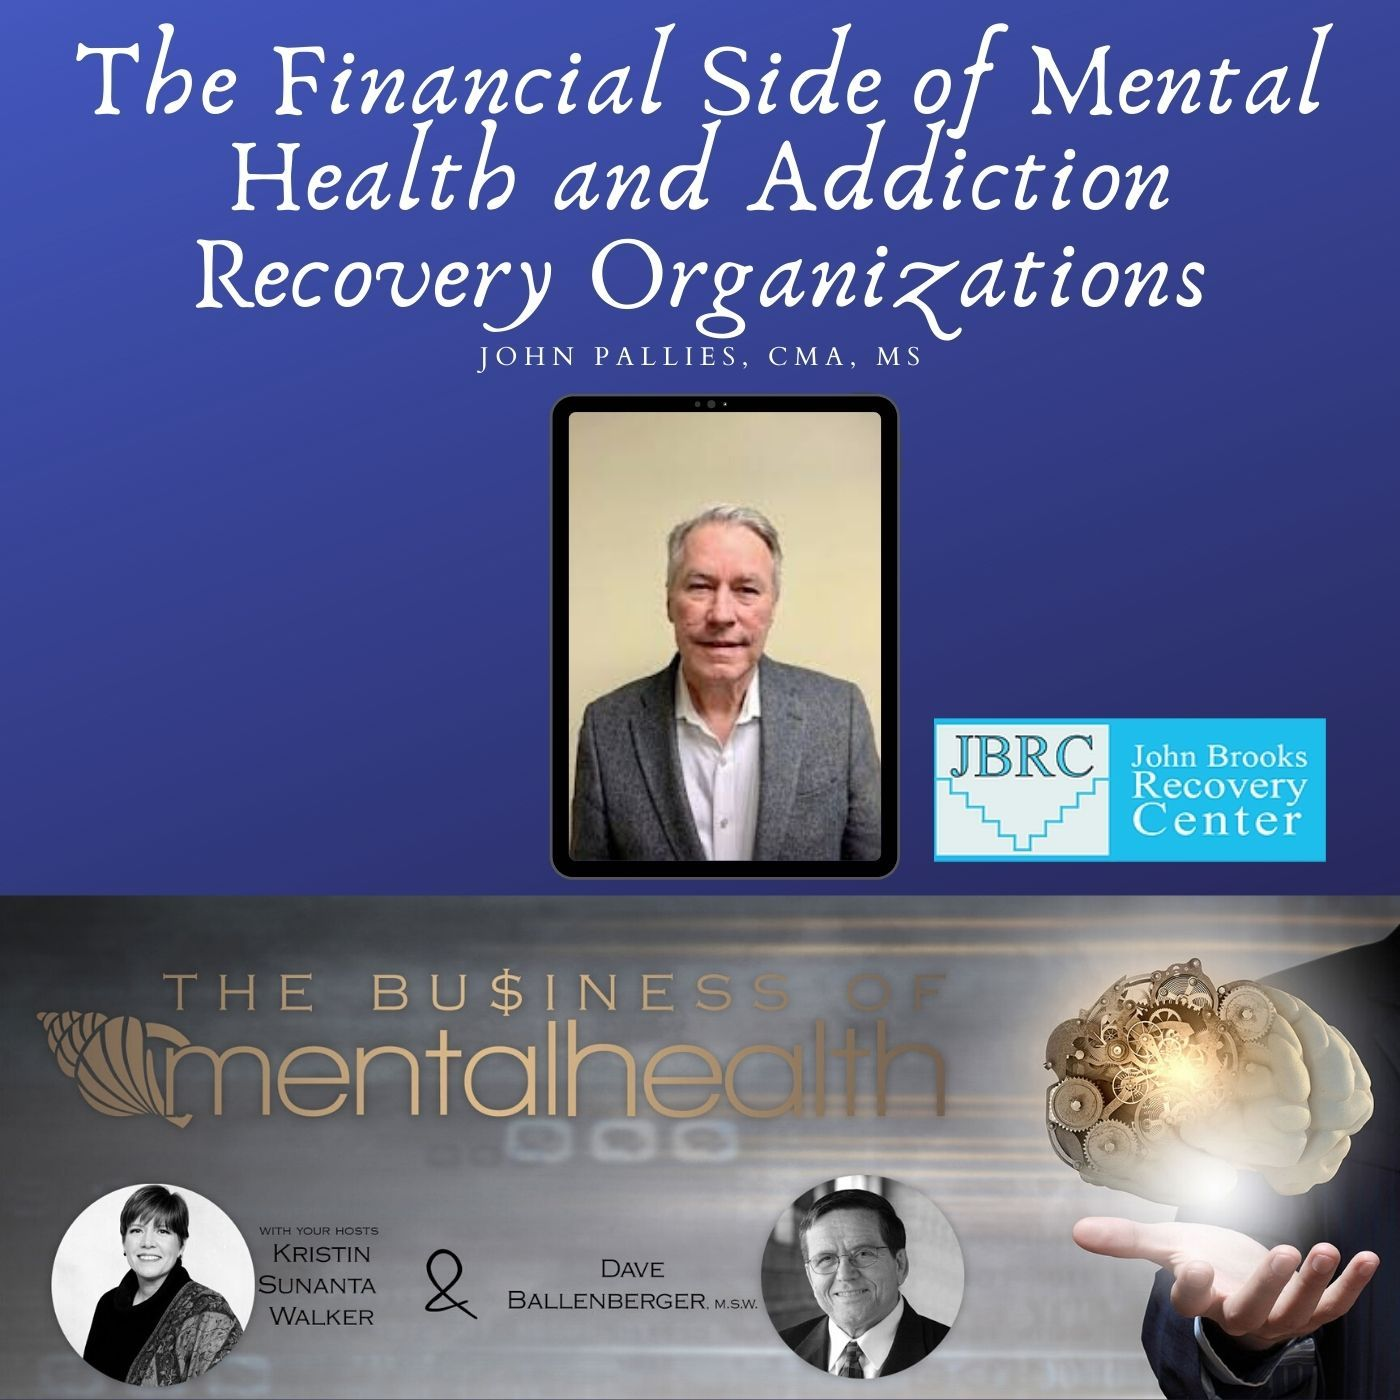 Mental Health News Radio - The Financial Side of Mental Health and Addiction Recovery Organizations